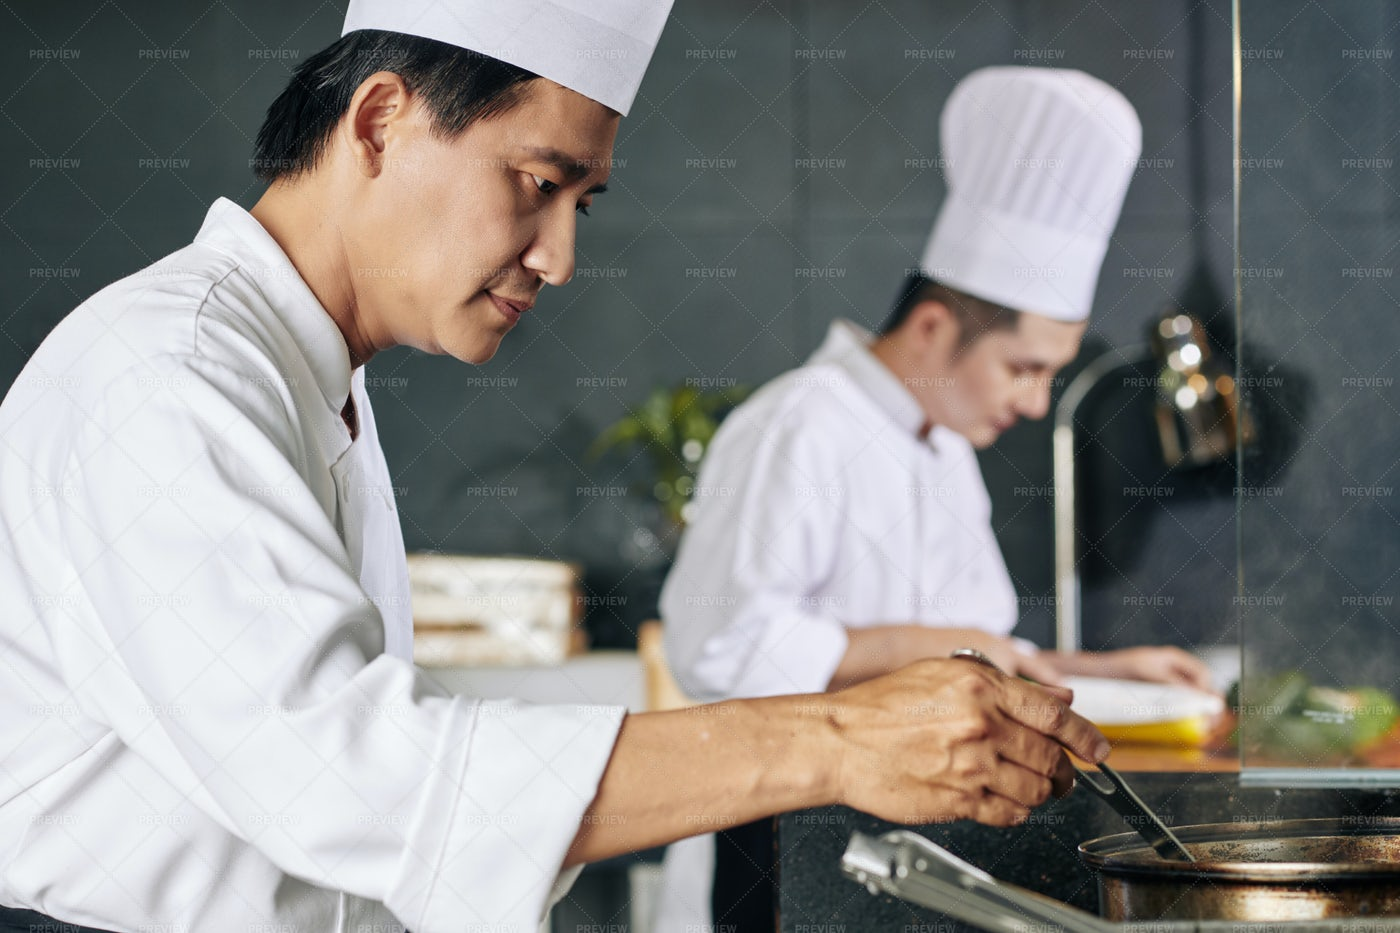 Asian Man Cooking In The Kitchen: Stock Photos